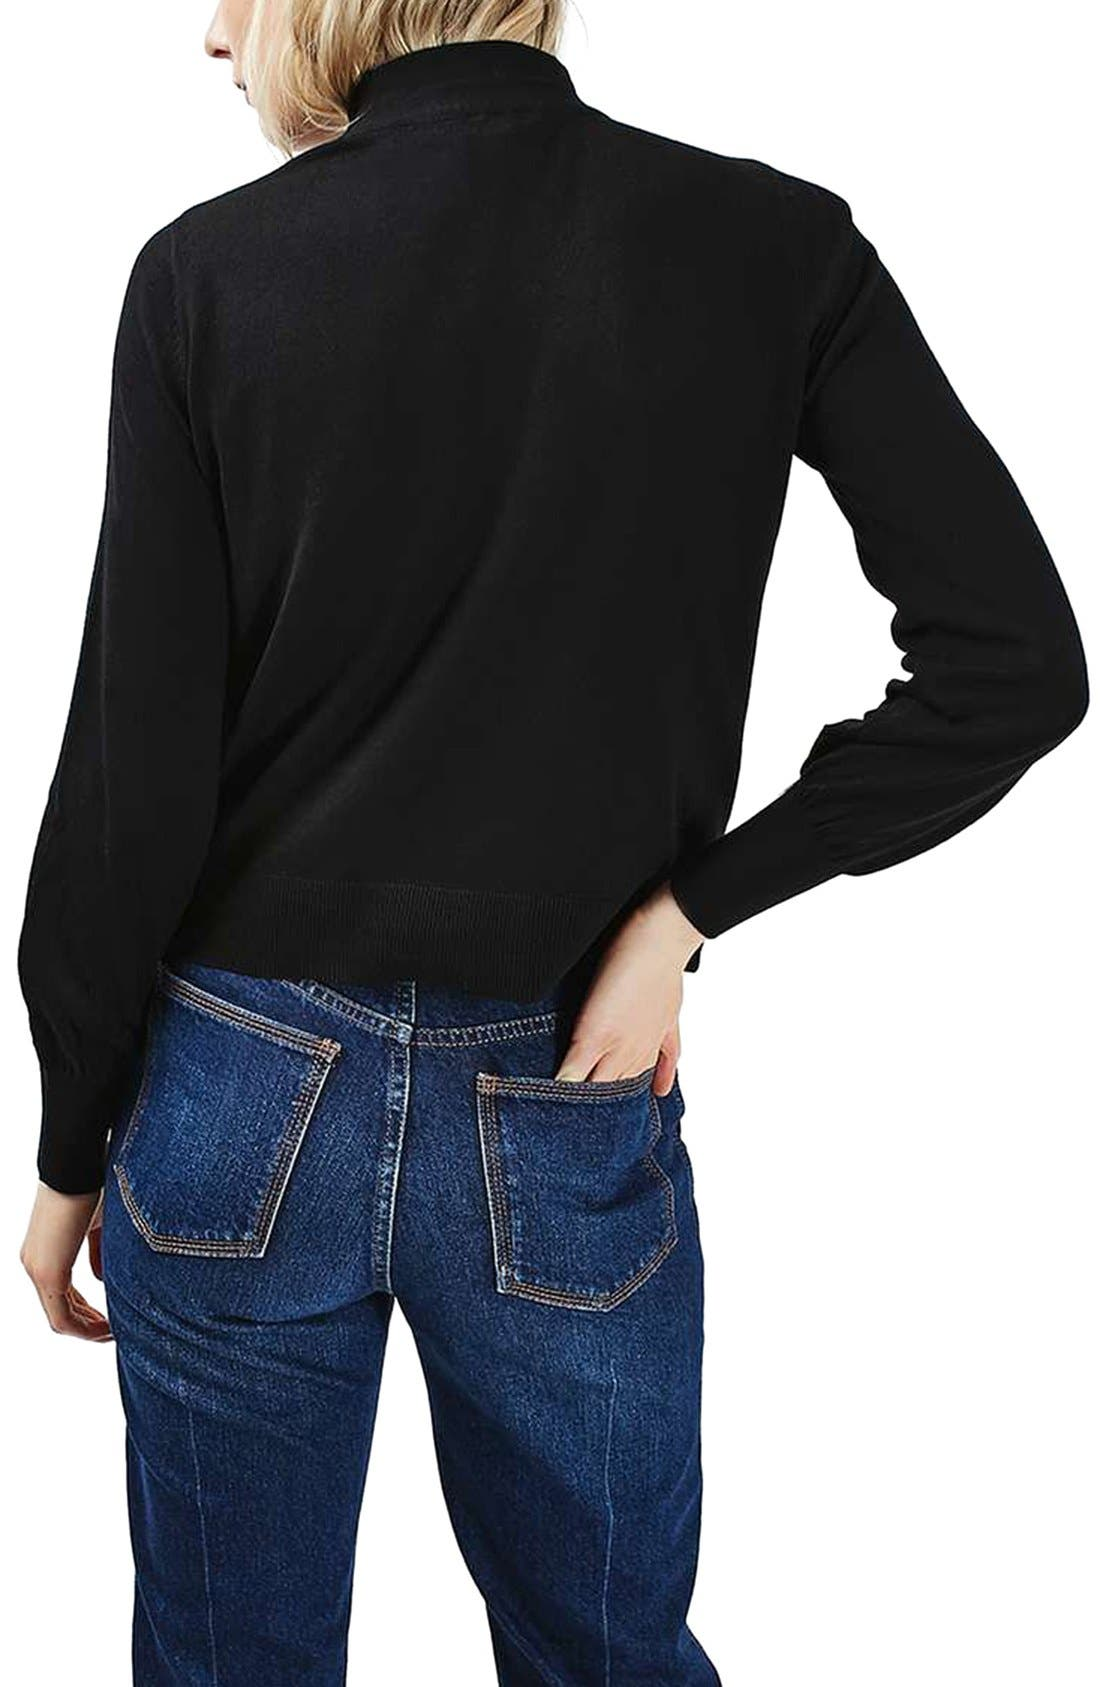 TOPSHOP,                             Blouson Sleeve Mock Neck Sweater,                             Alternate thumbnail 3, color,                             001